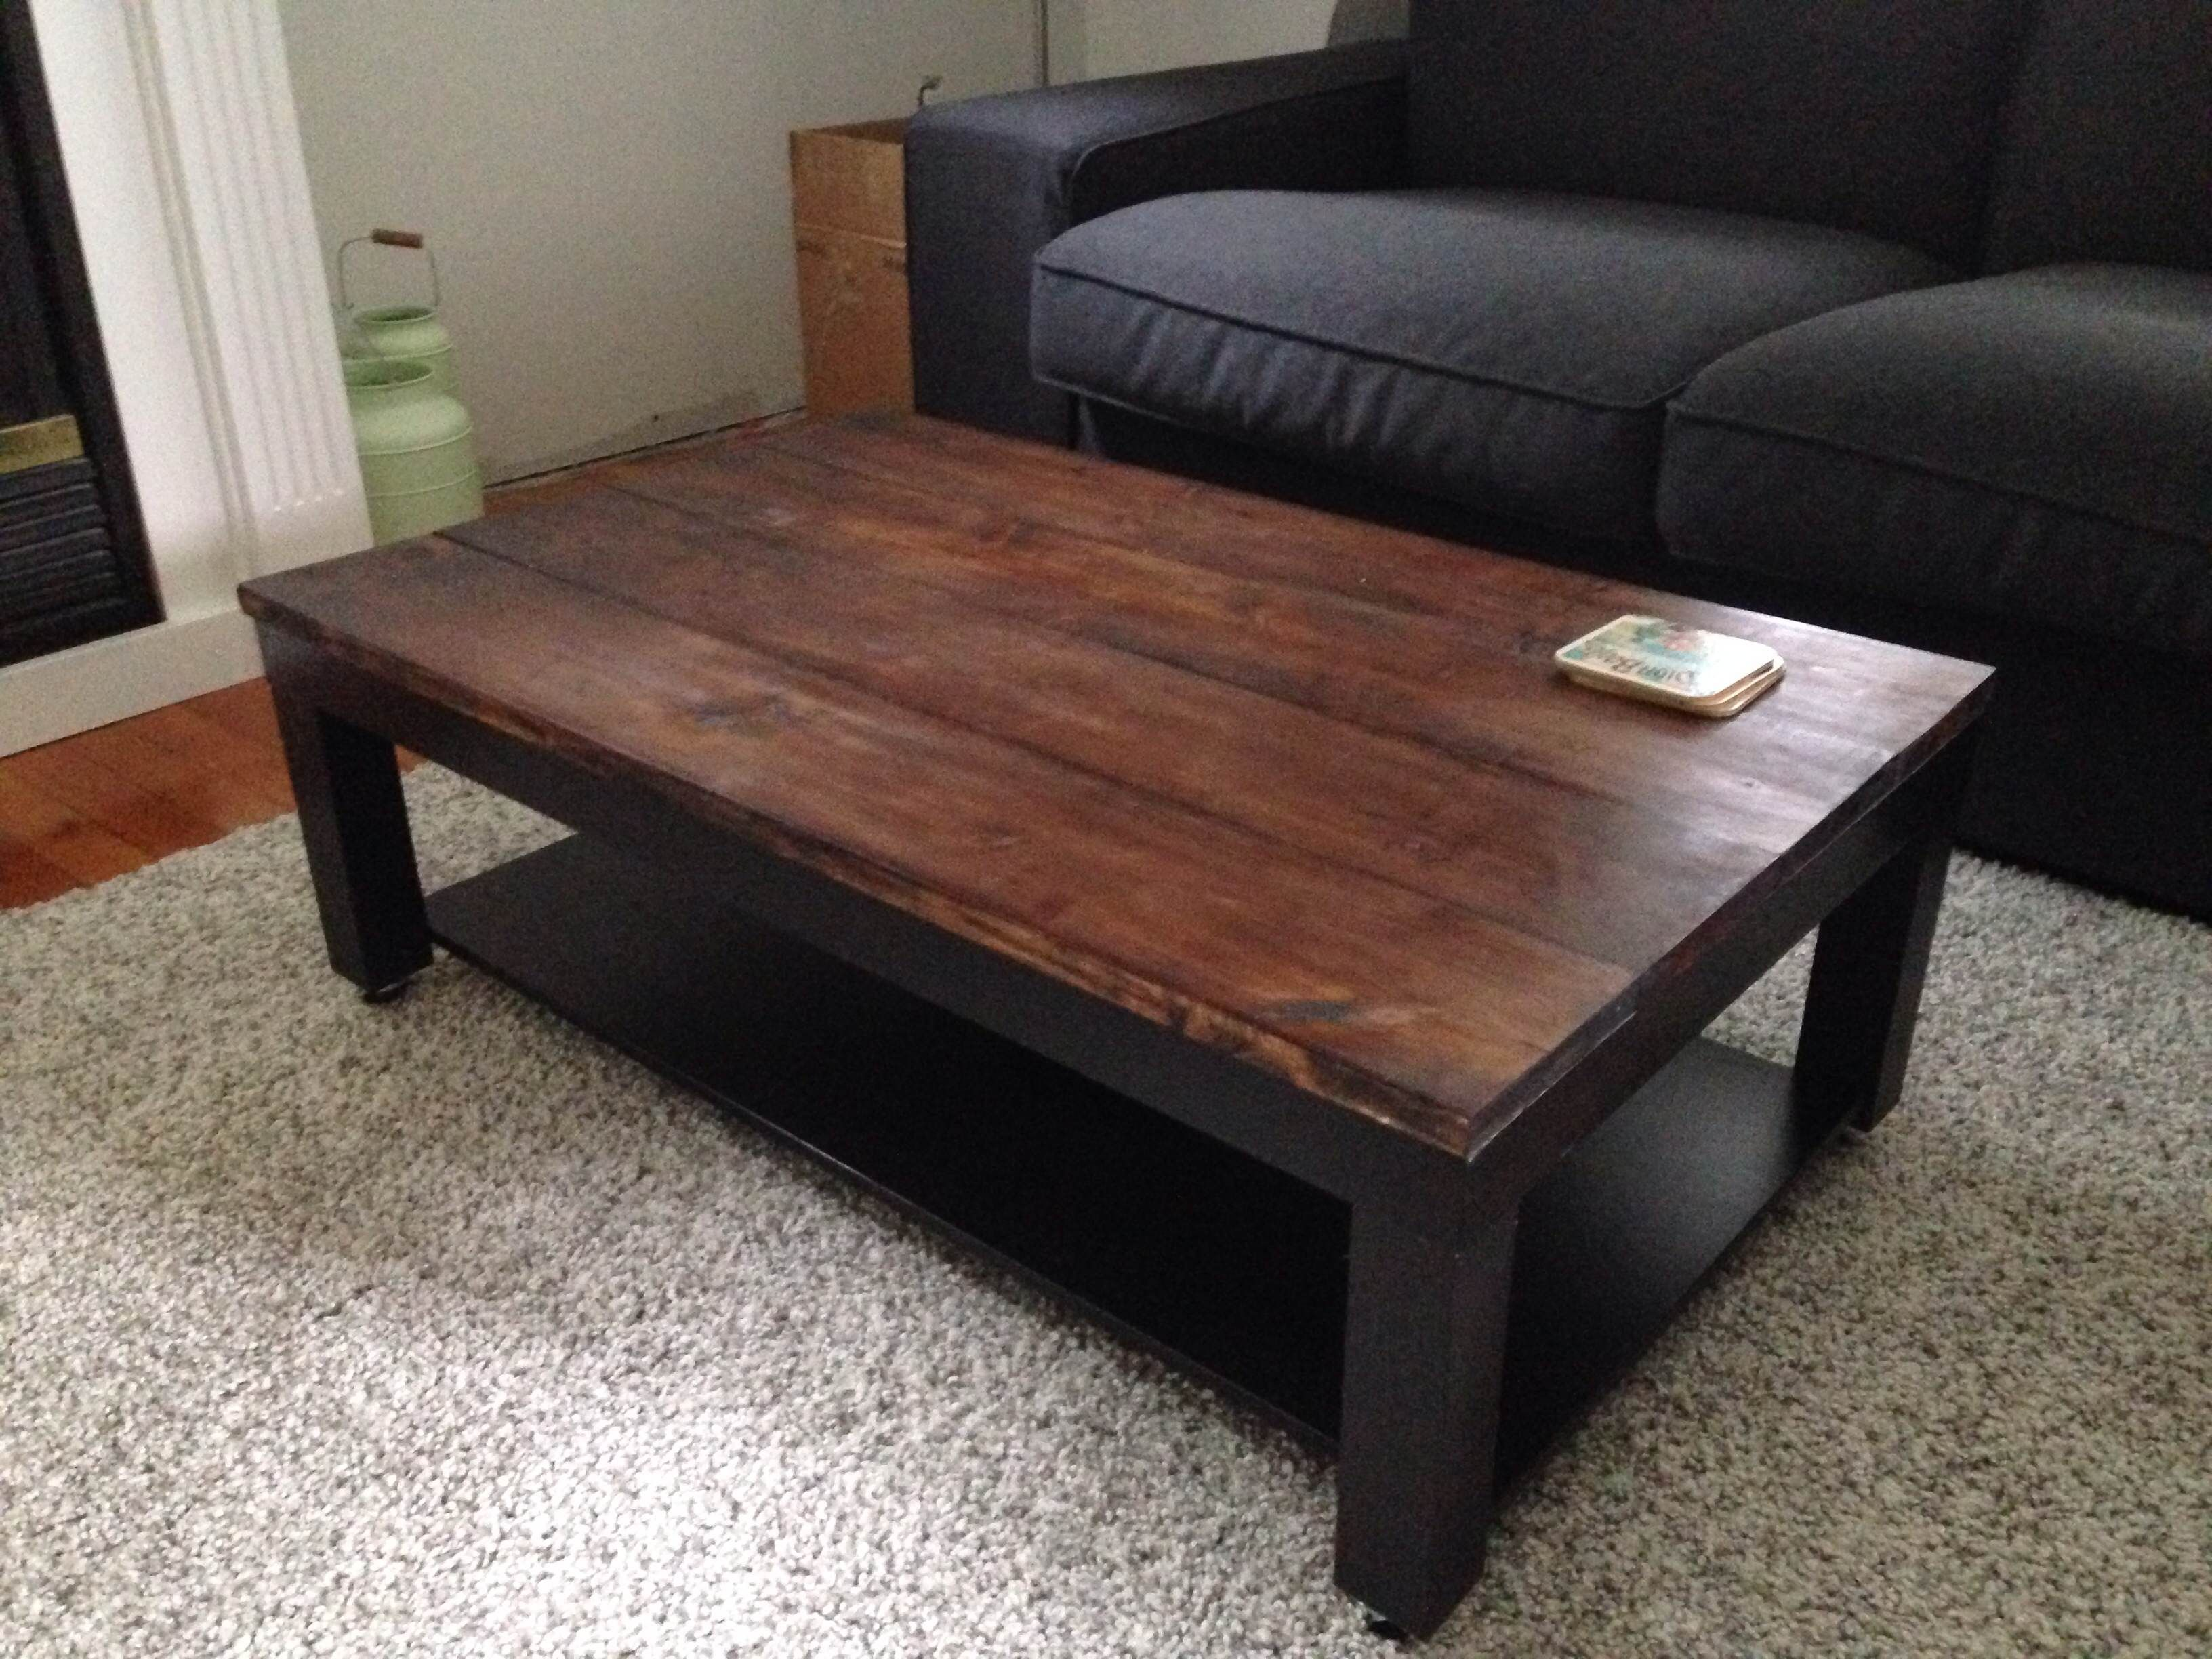 ikea coffee table images # 20